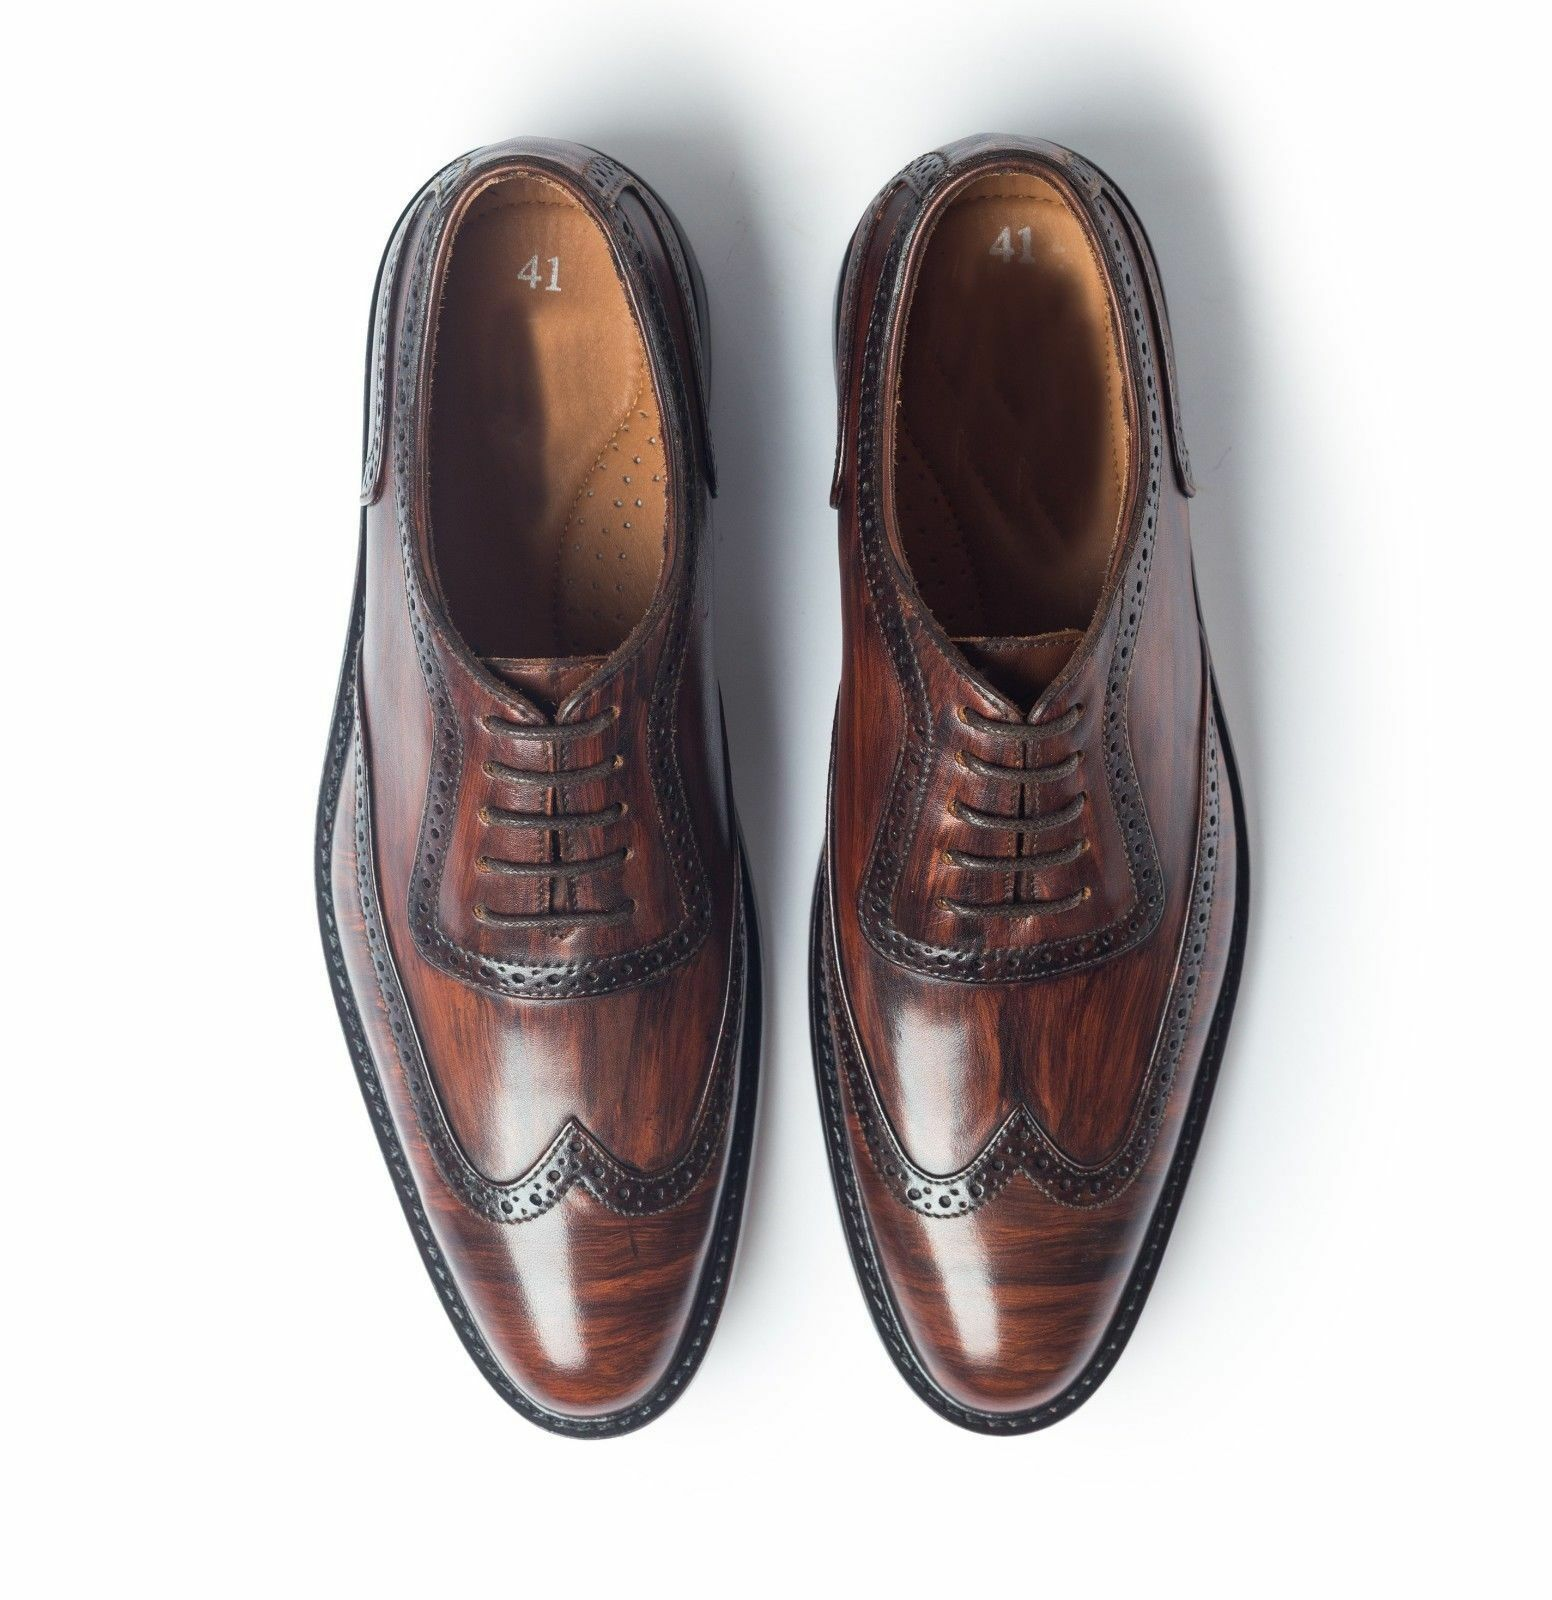 Handmade Wing Tip Oxford Derby Pelle Shoes Uomo, Hand Stitched Formal Two Tone Formal Stitched 710eba